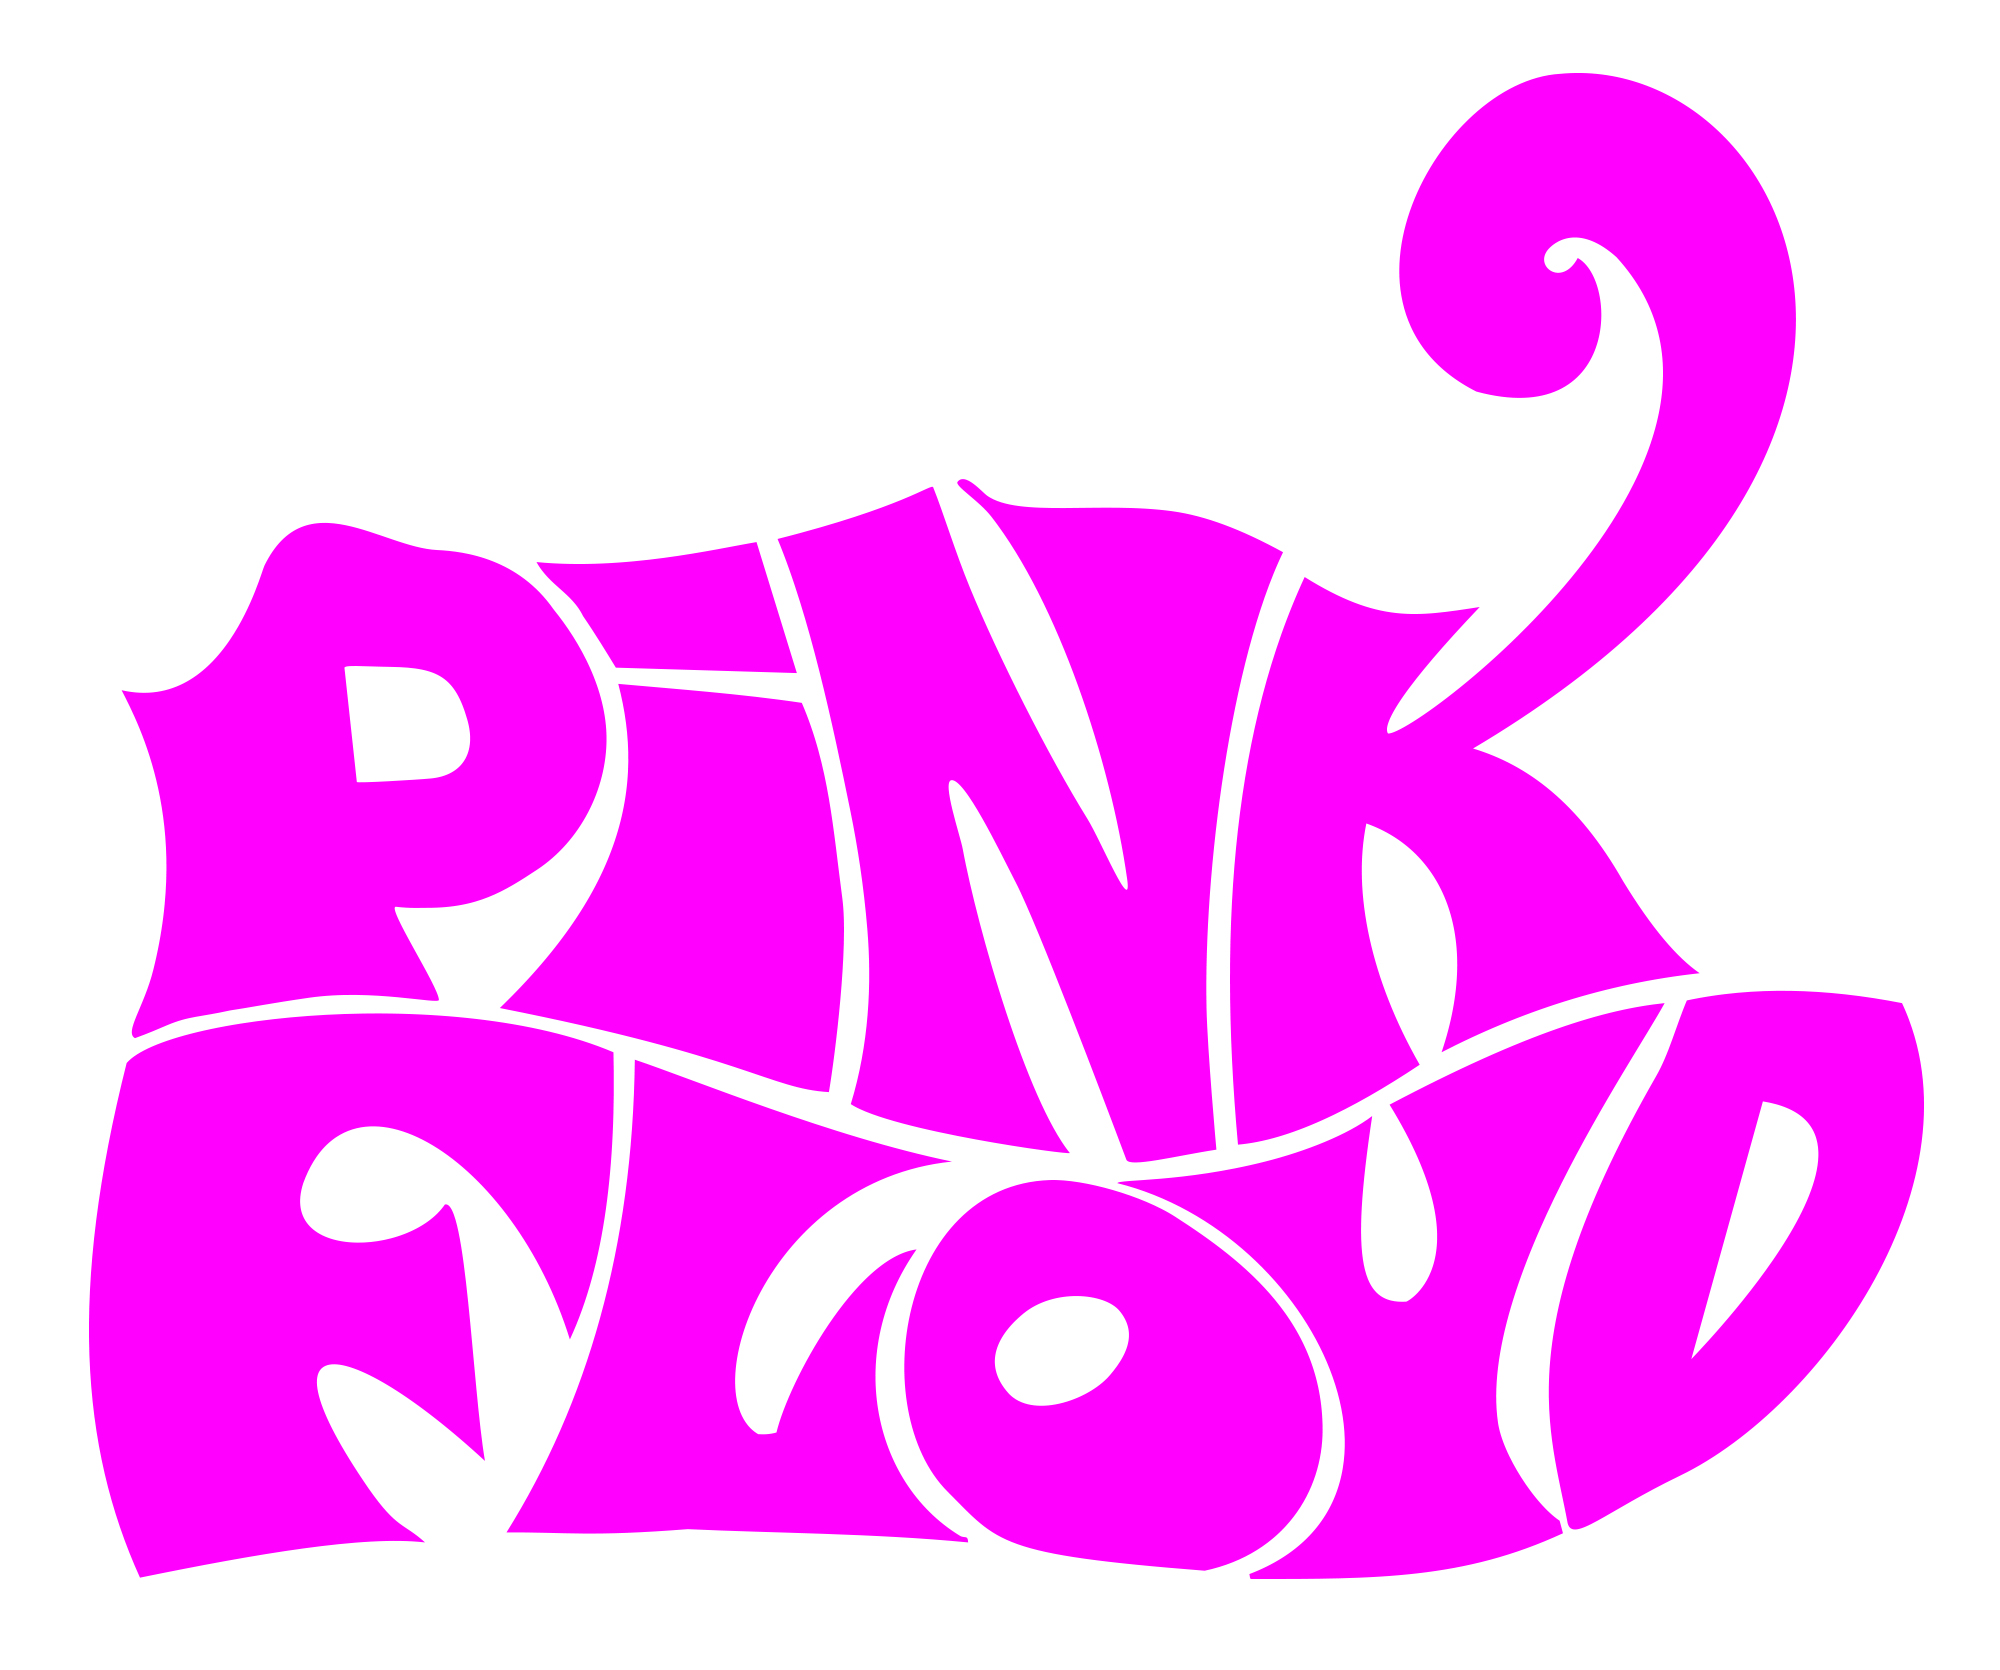 Meaning Pink Floyd logo and symbol.